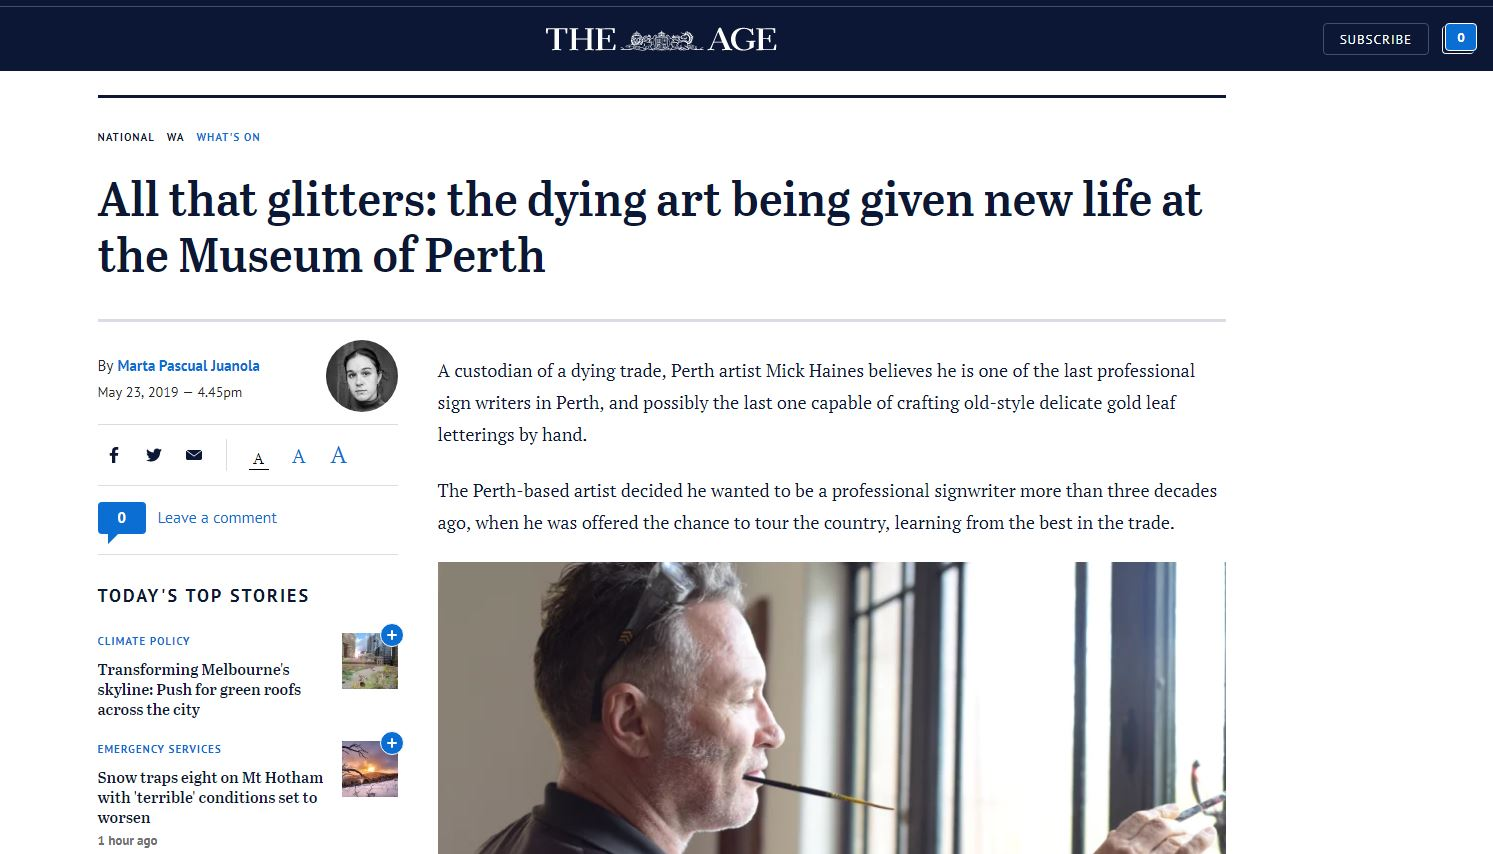 All that glitters: the dying art being given new life at the Museum of Perth - The Age, May 23, 2019